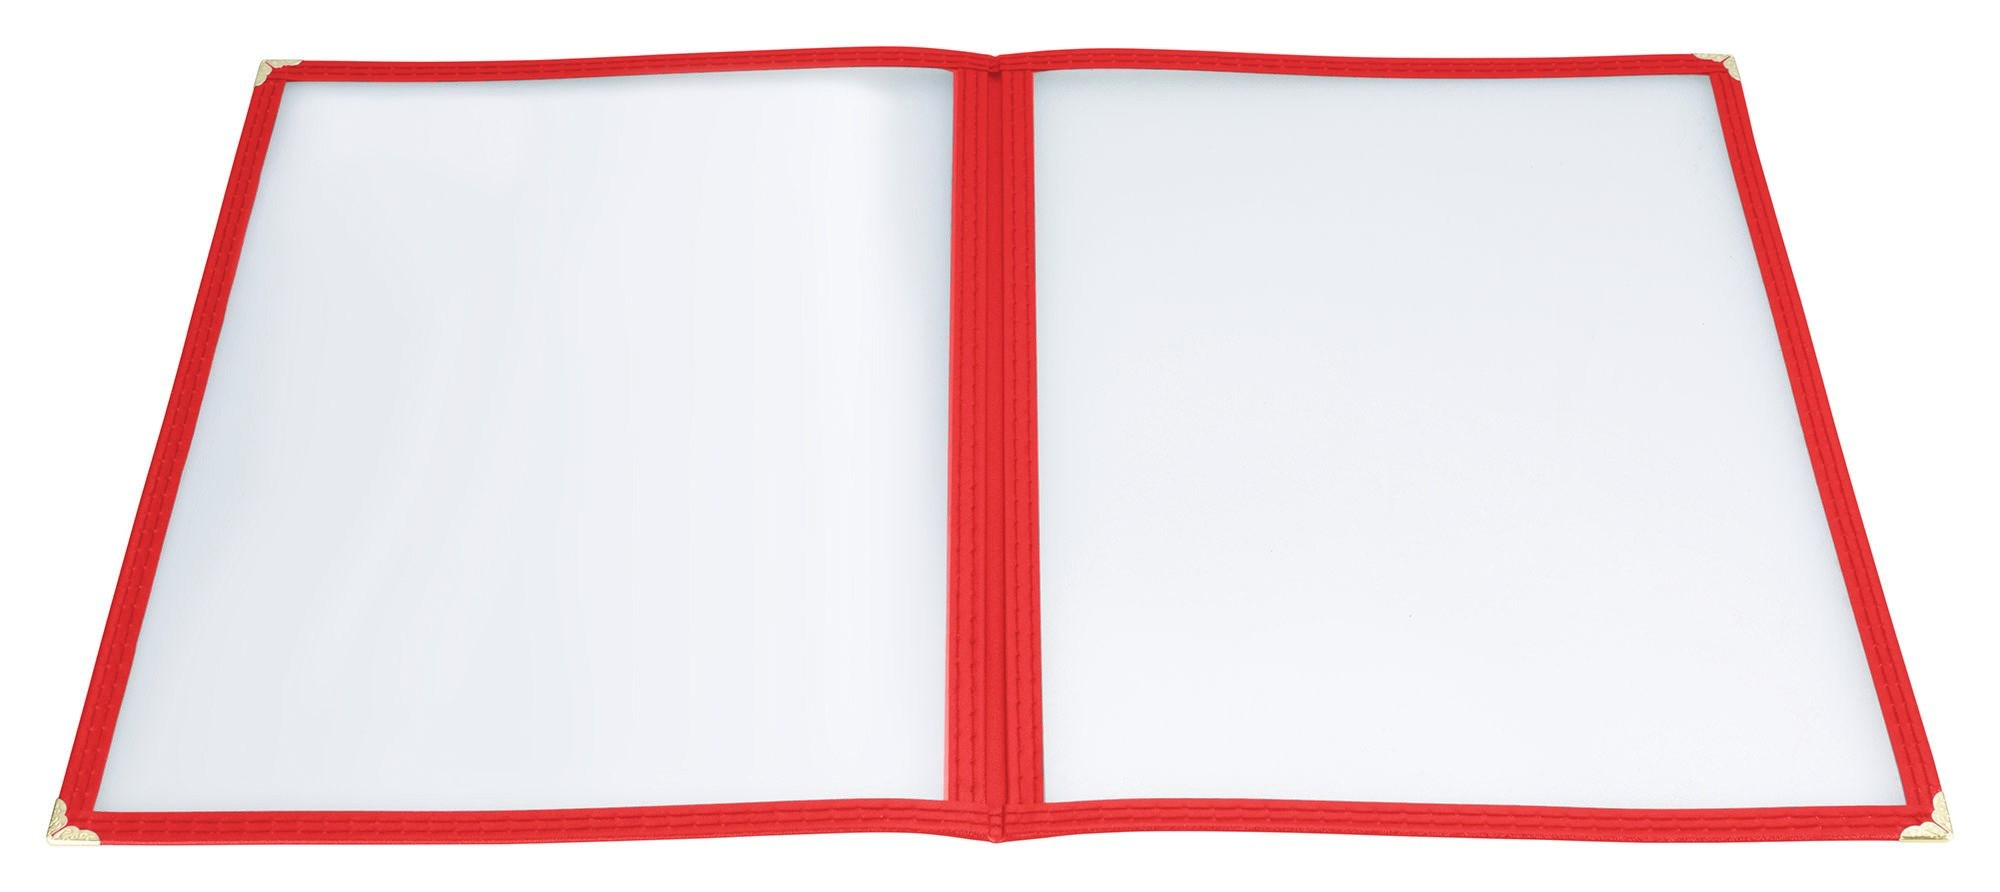 "Winco PMCD-9R Red Double Fold Menu Cover 9-1/2"" x 12"""